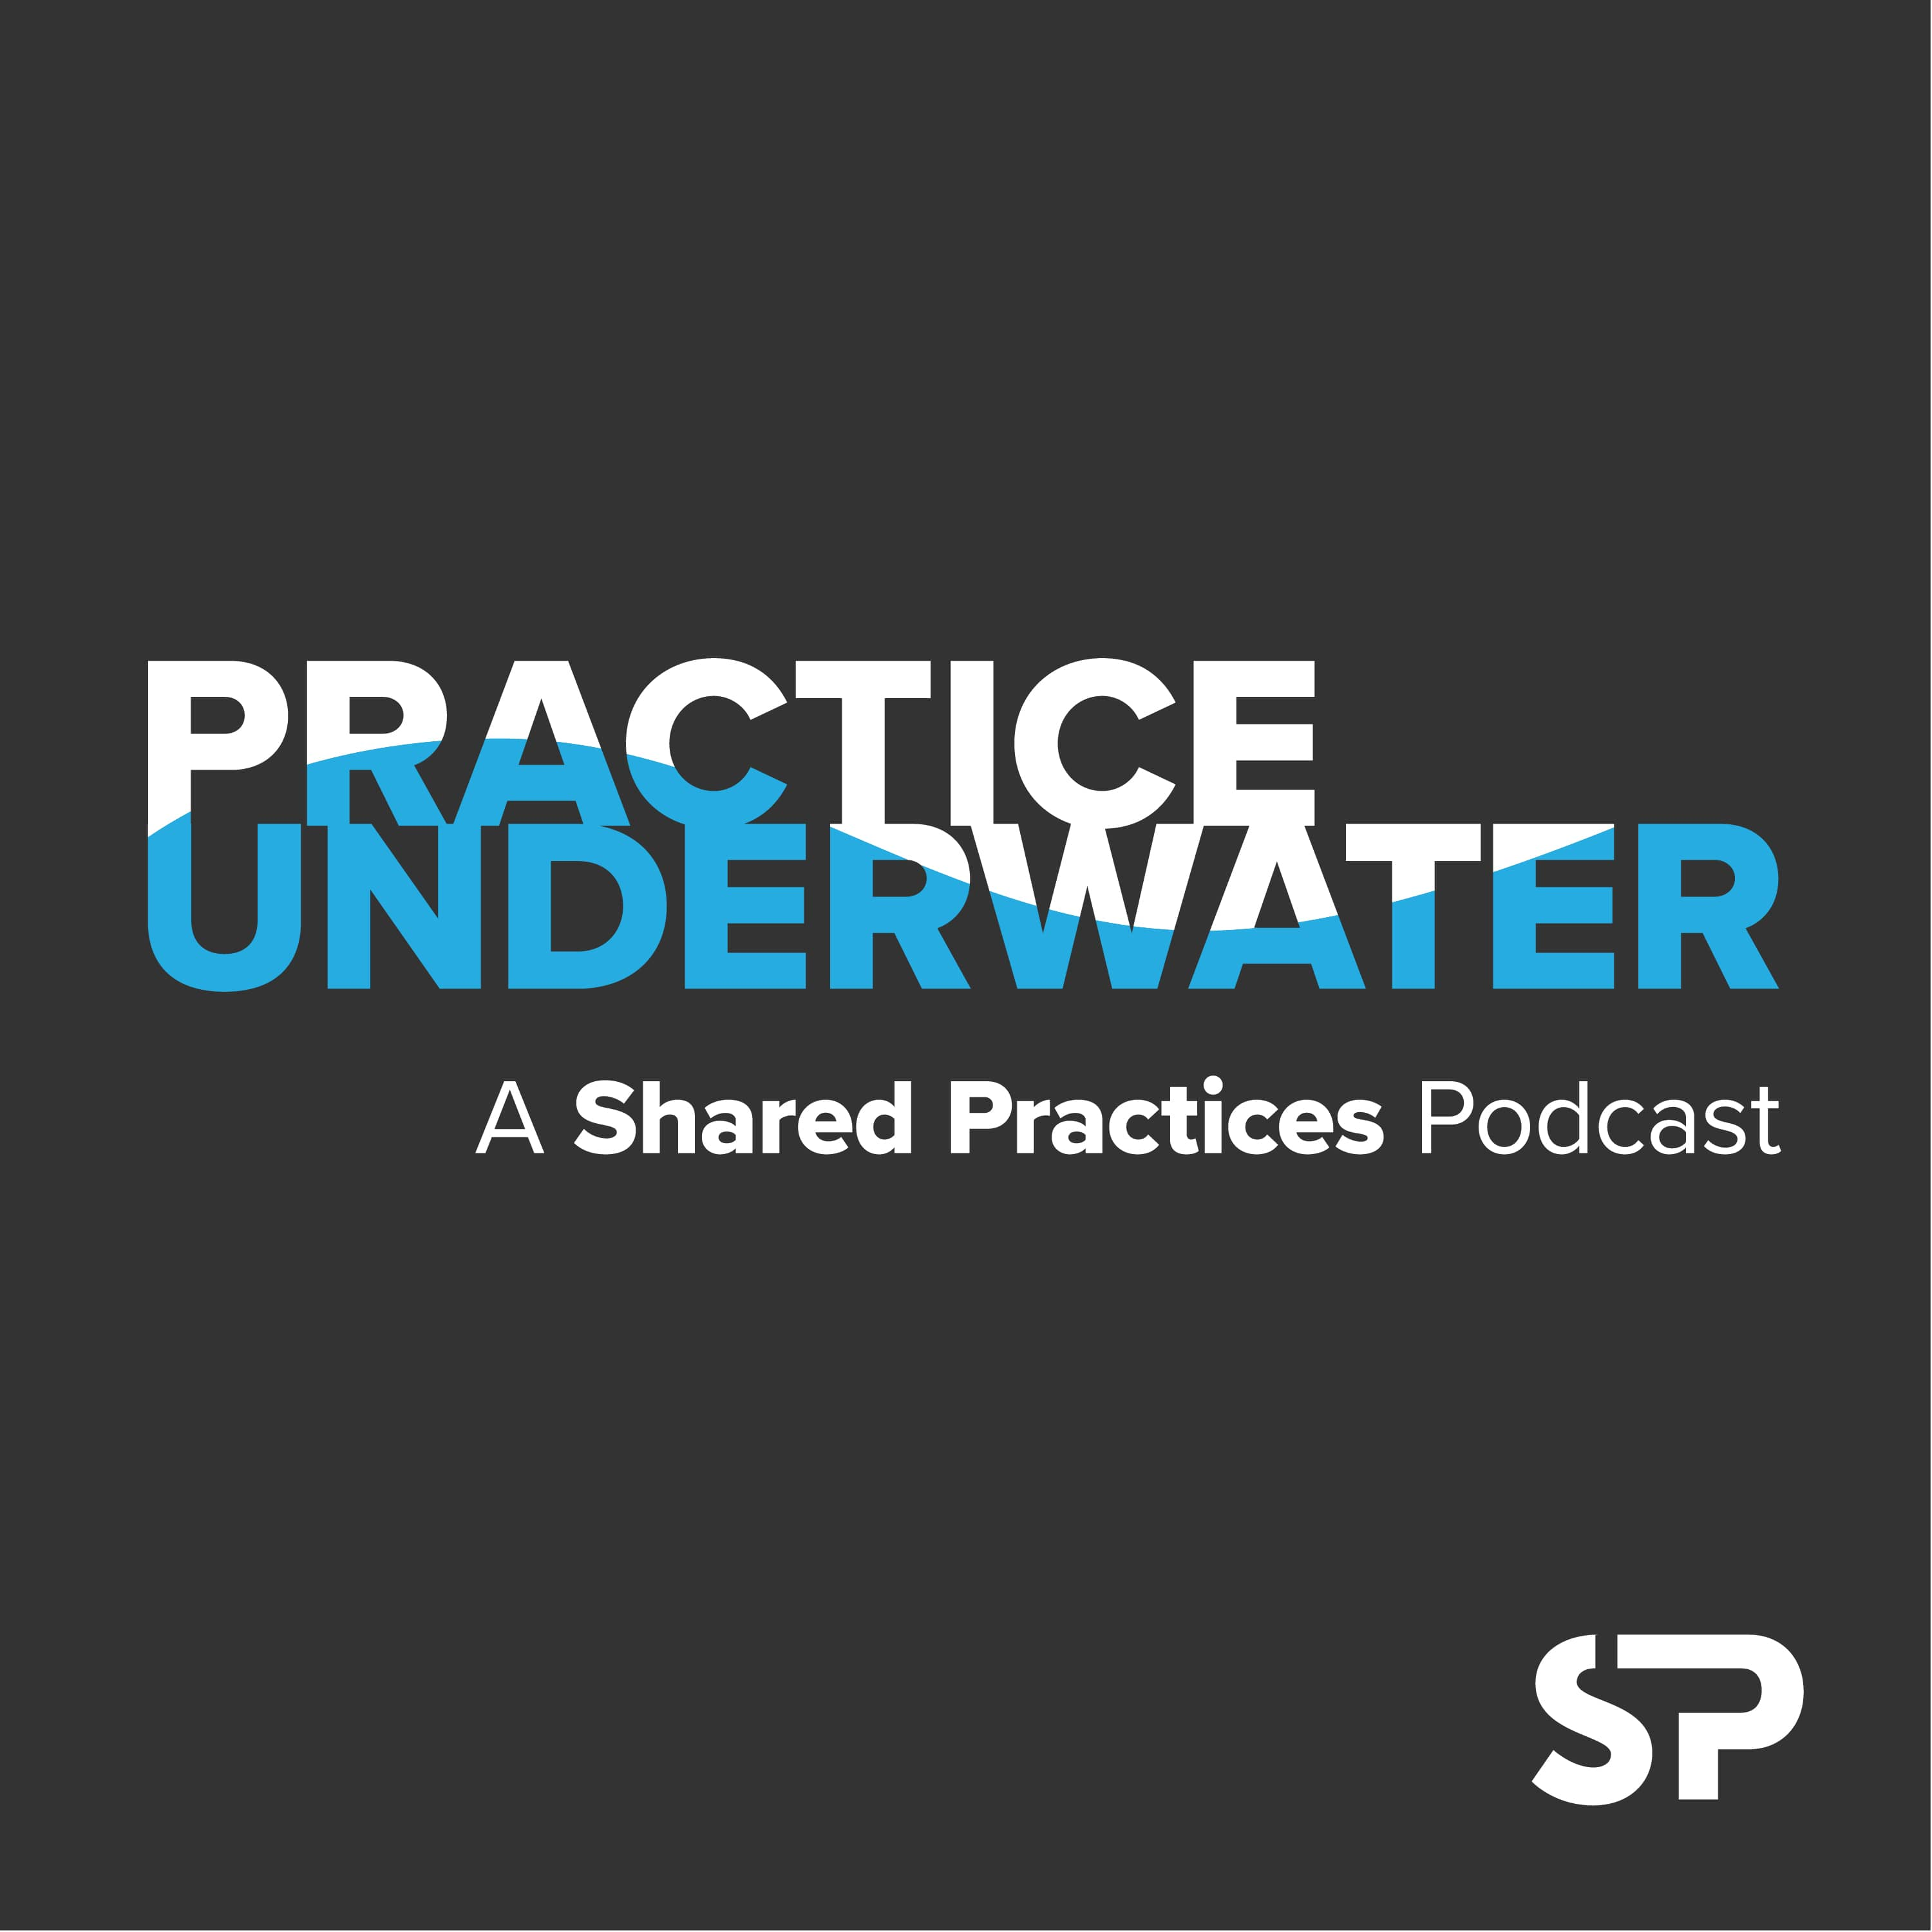 Shared Practices for their Practice Underwater Podcast Cover Art